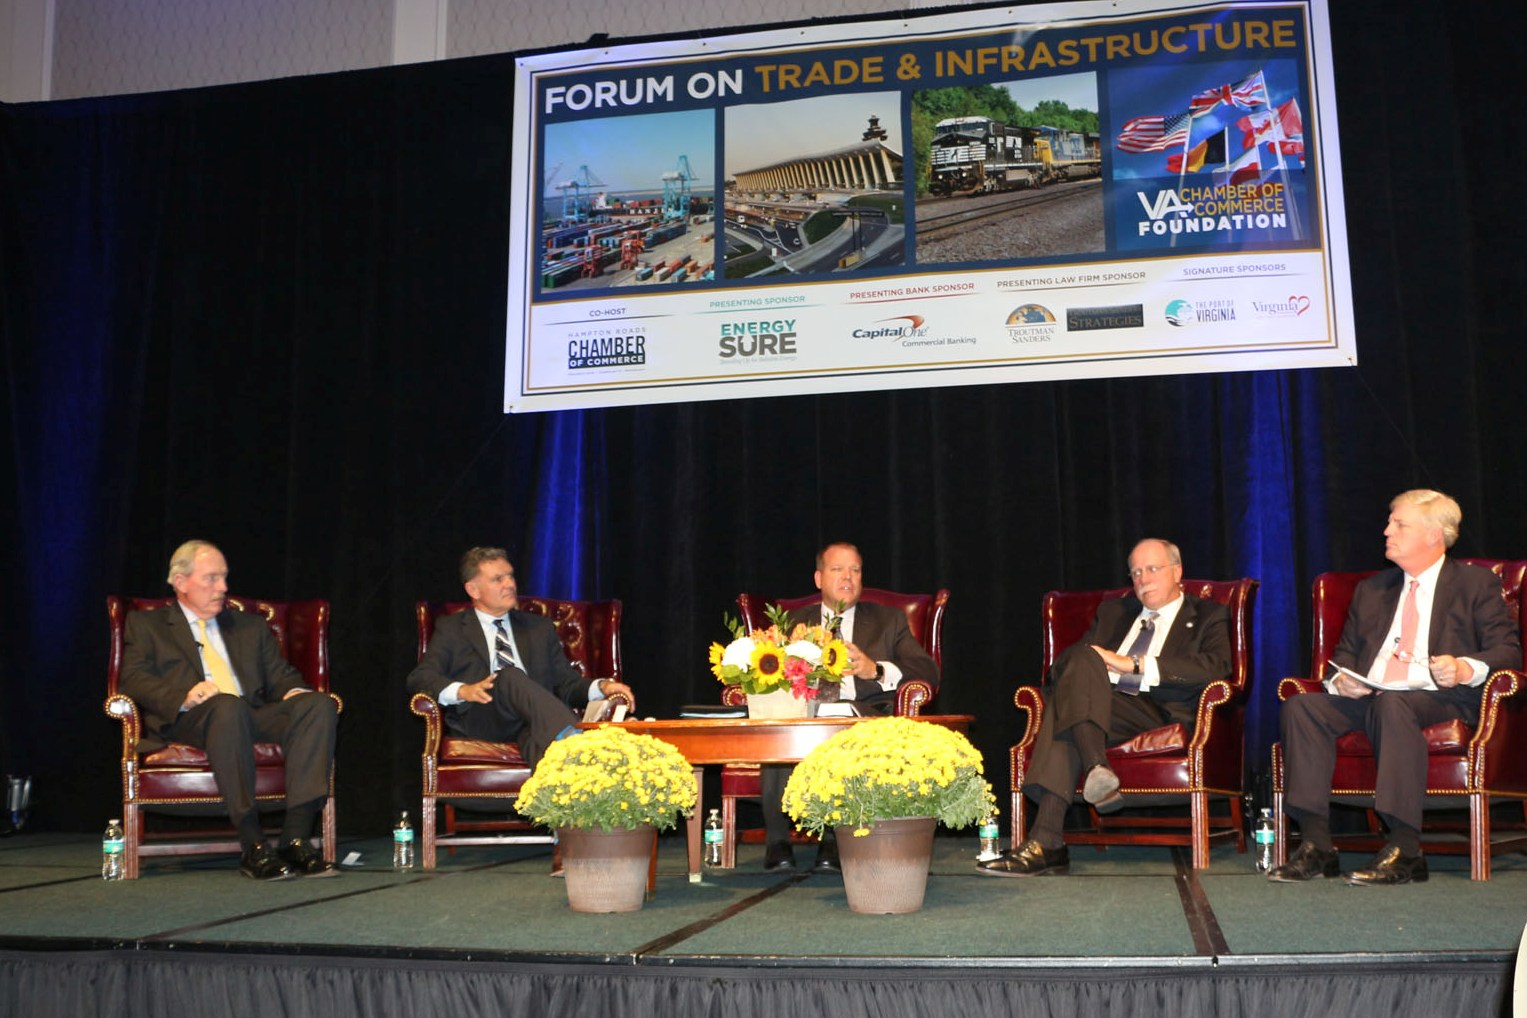 Forum on Trade & Infrastructure